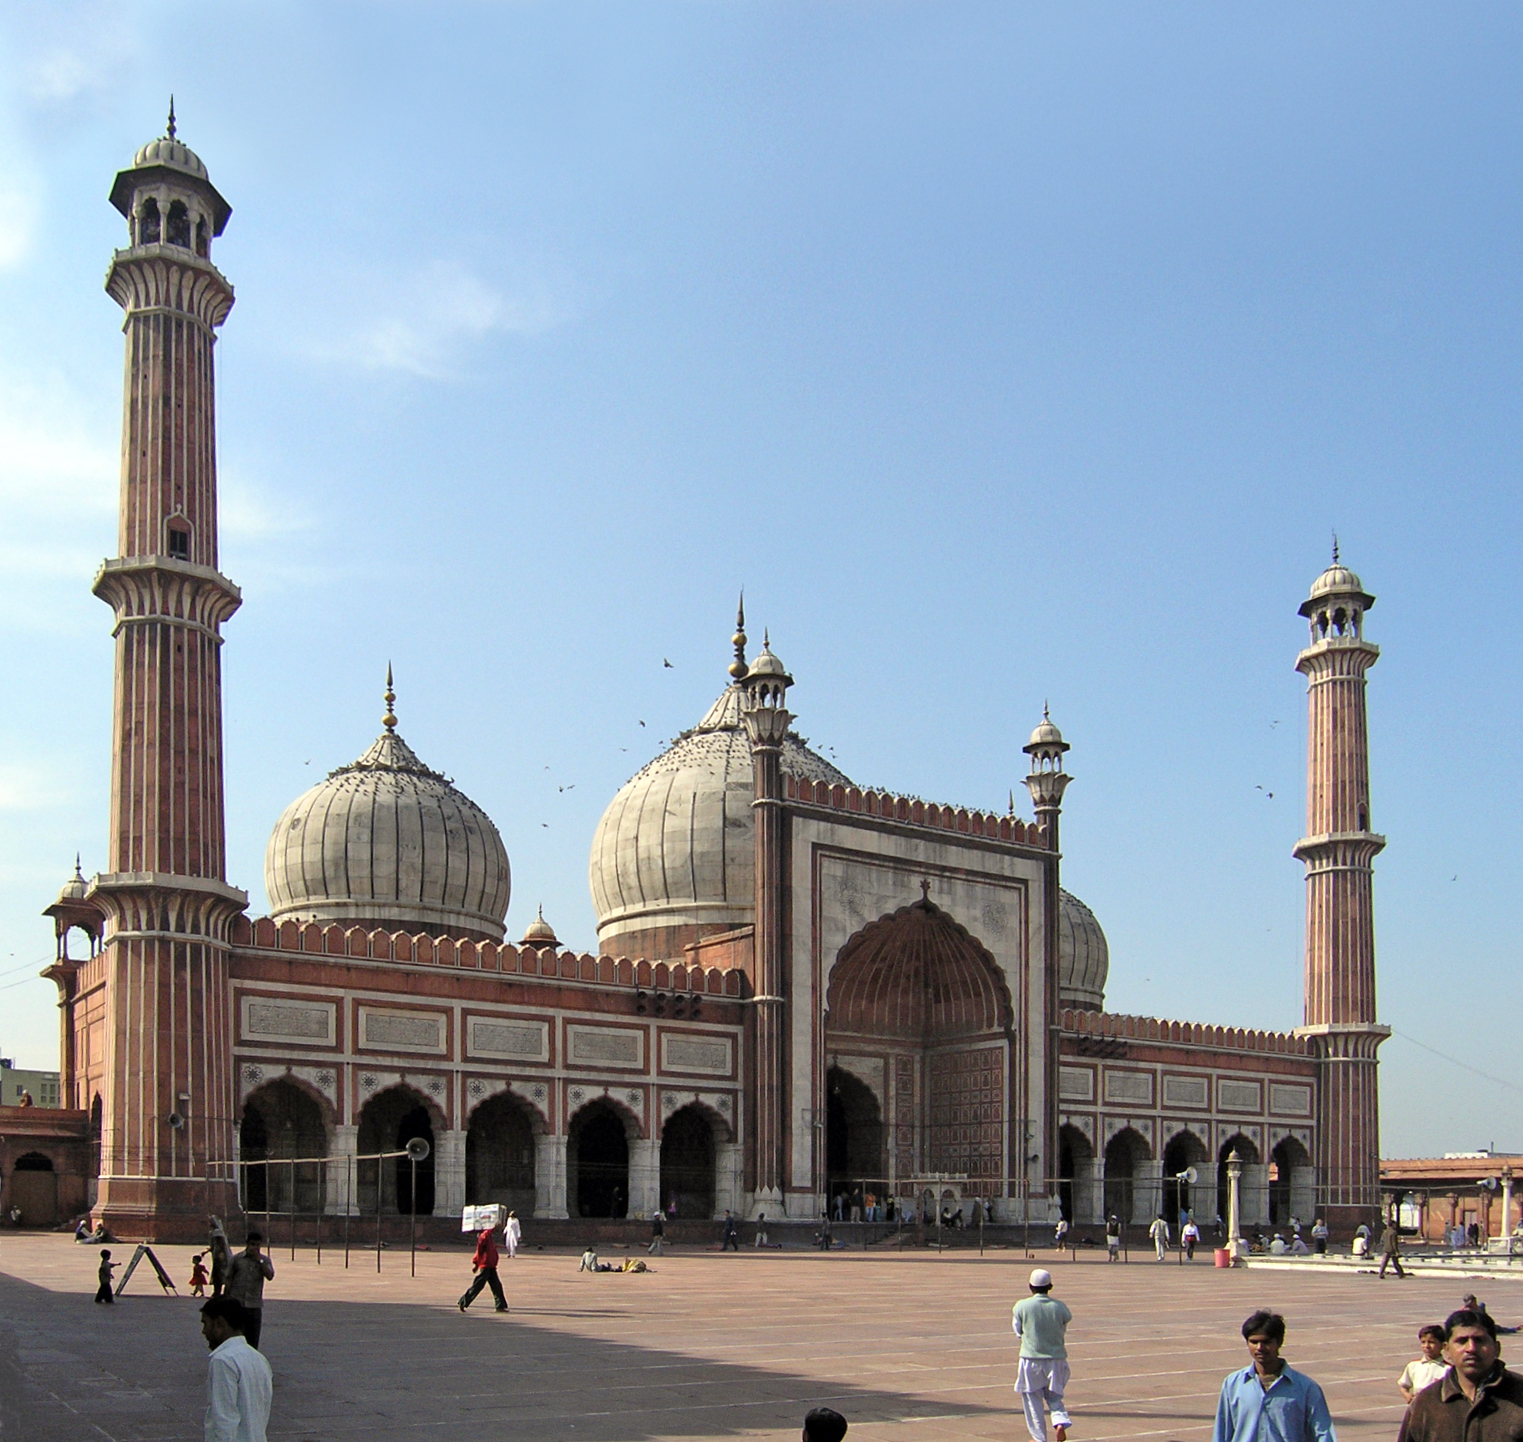 http://upload.wikimedia.org/wikipedia/commons/2/29/Jama_Masjid_is_the_largest_mosque_in_India._Delhi,_India..jpg